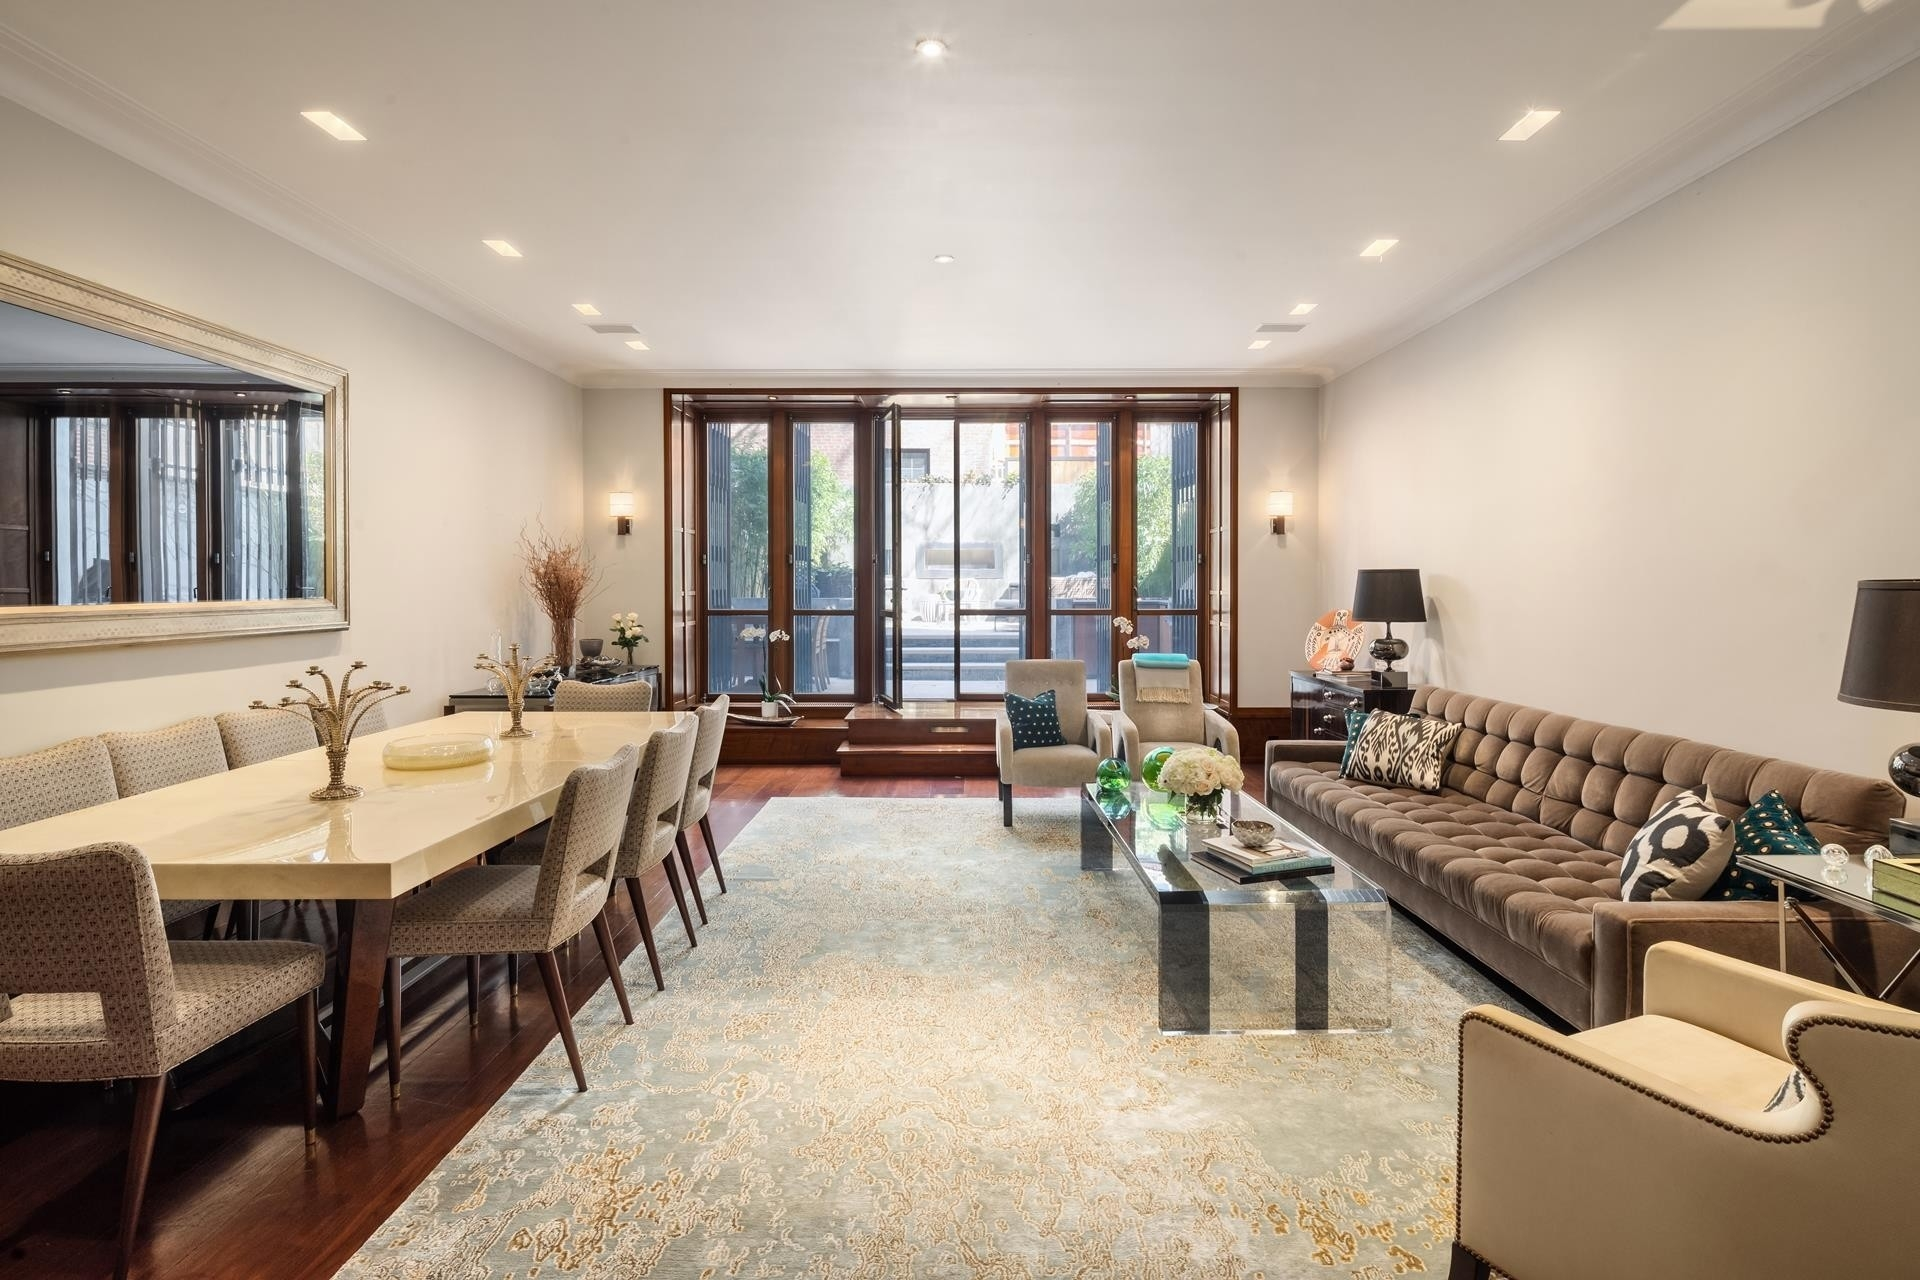 6. Single Family Townhouse for Sale at 159 E 61ST ST , TOWNHOUSE Lenox Hill, New York, NY 10065